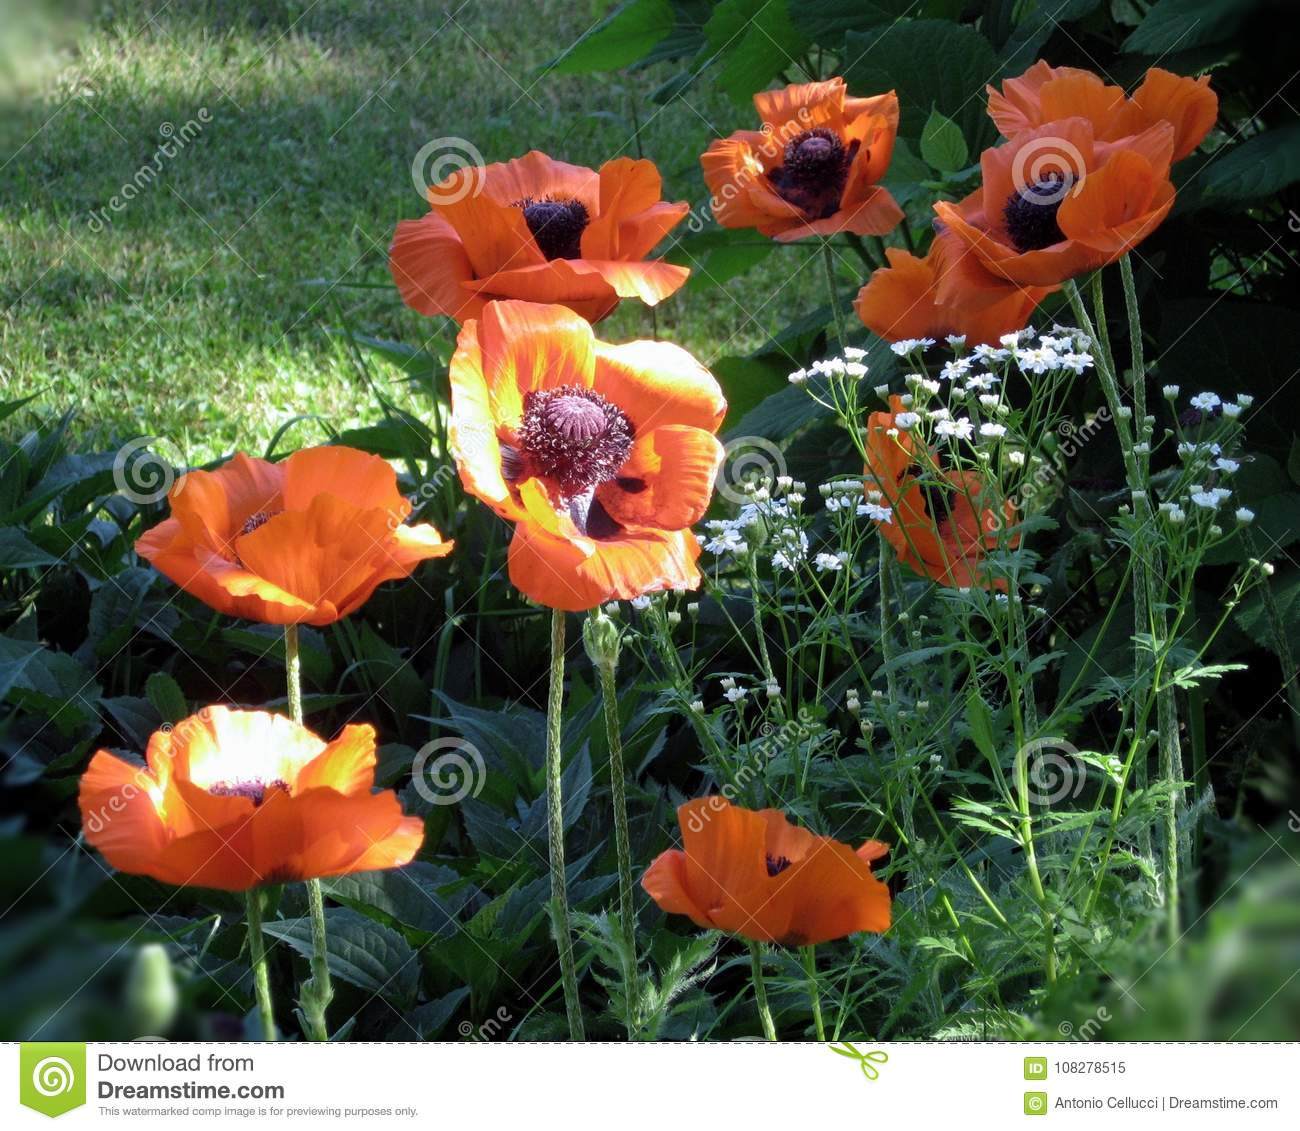 Poppy`s flowers growing in the garden